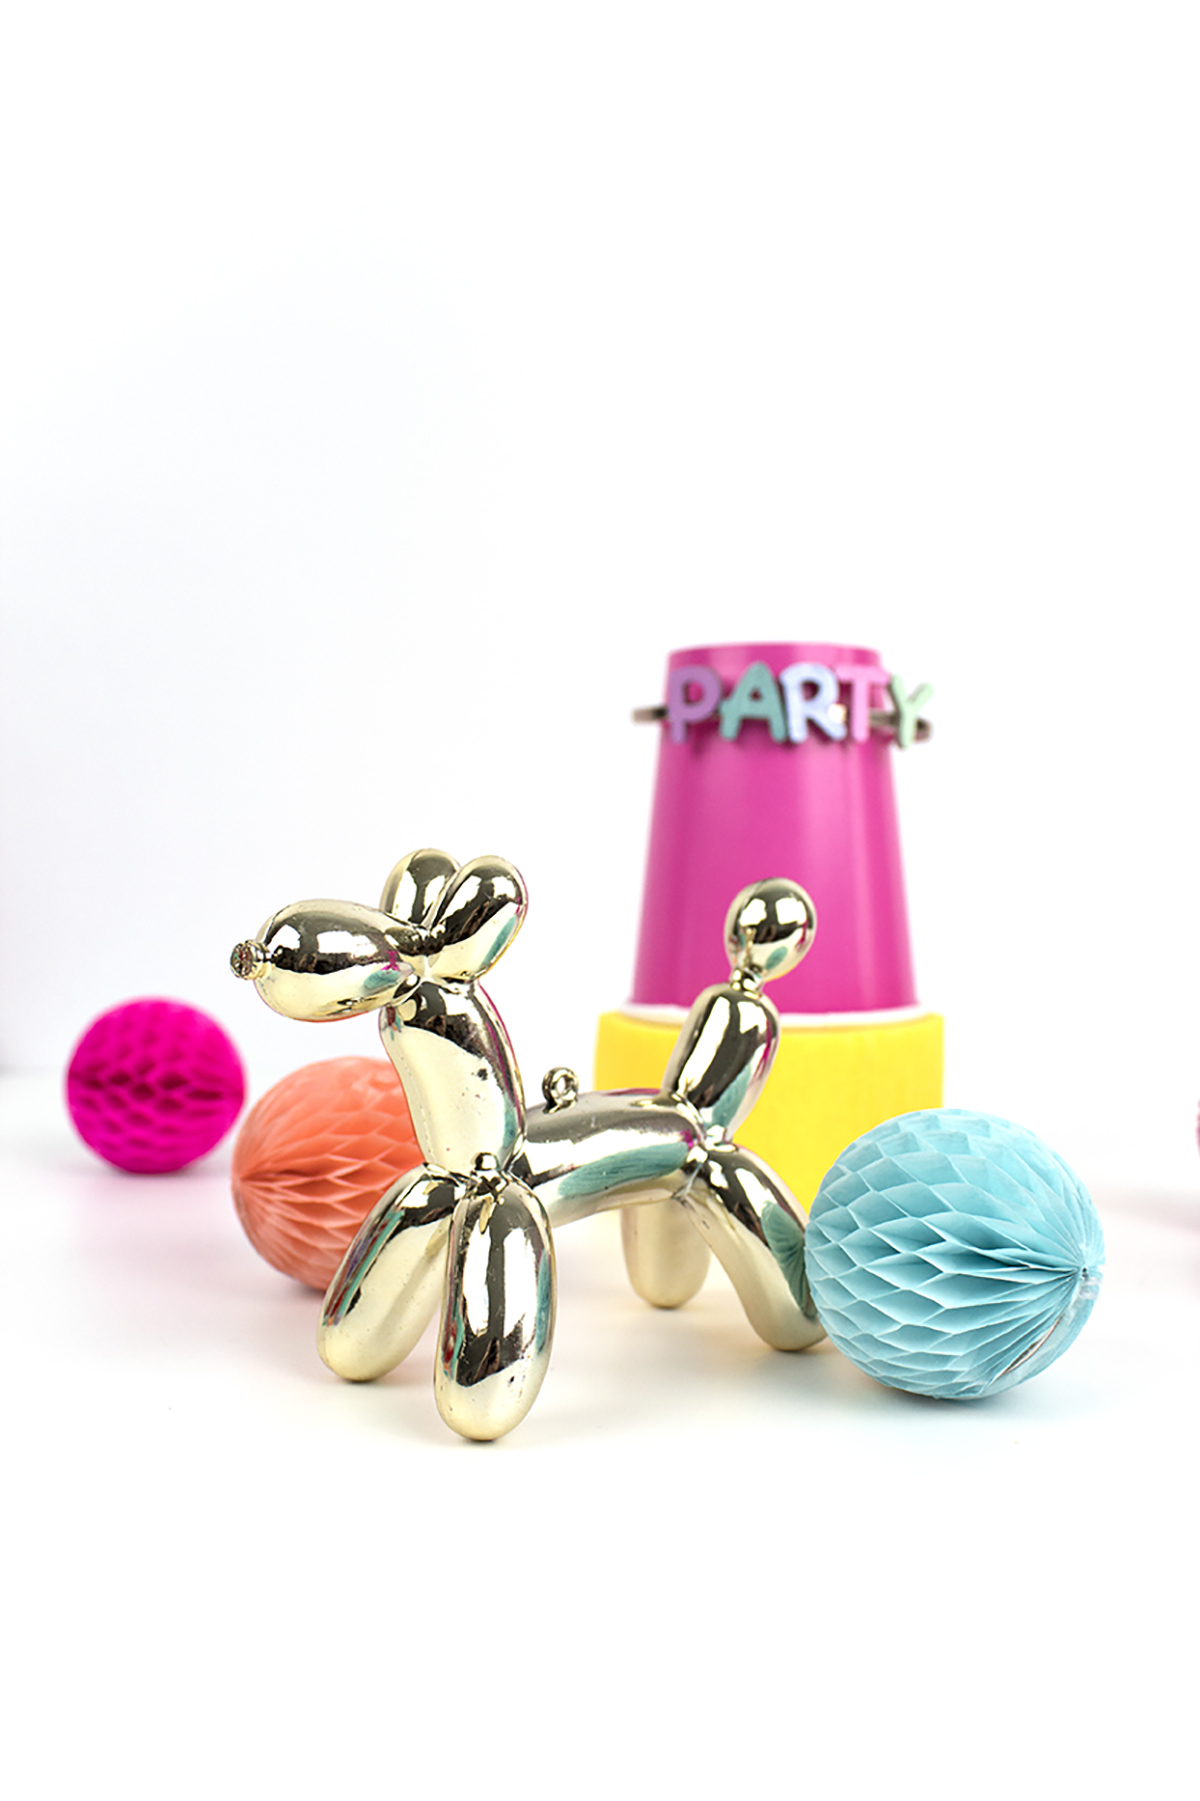 Super affordable bracelet inspired by Kate Spade's Whimsies balloon collection! Click for the full tutorial.